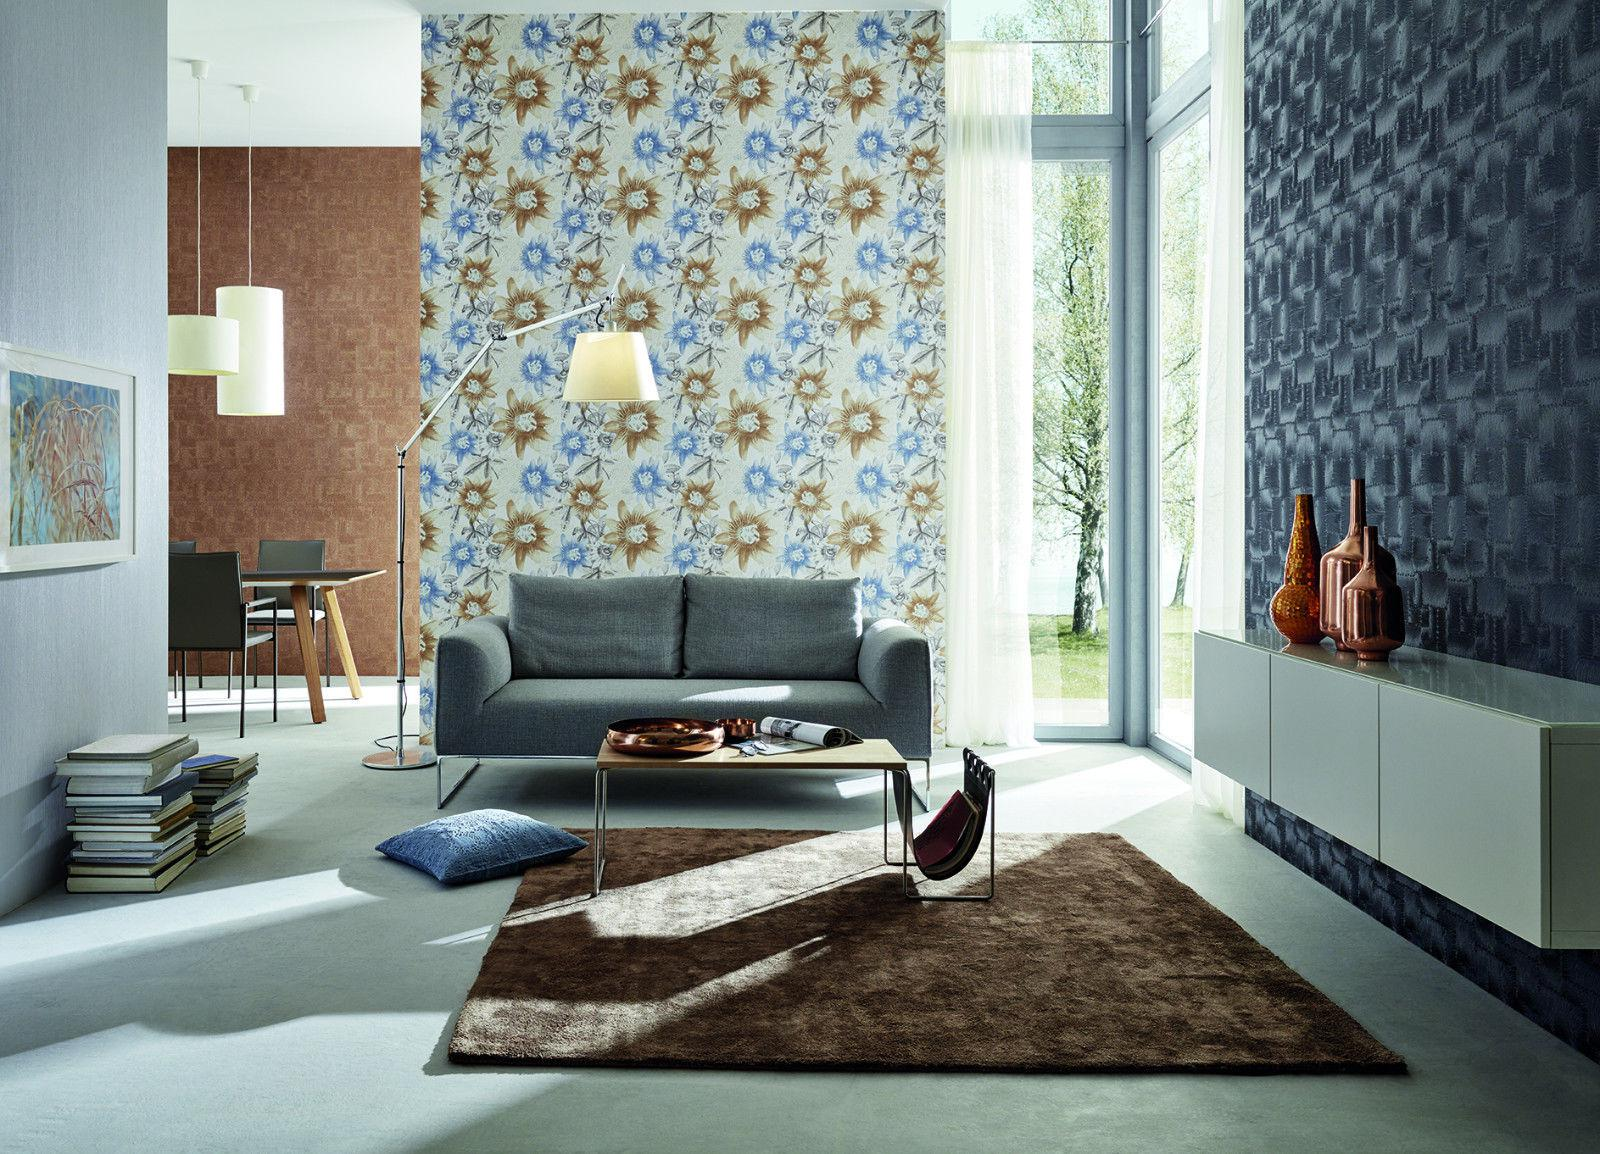 vlies tapete aquarell passionsblume retro blumen muster wei pastell blau pink kaufen bei. Black Bedroom Furniture Sets. Home Design Ideas